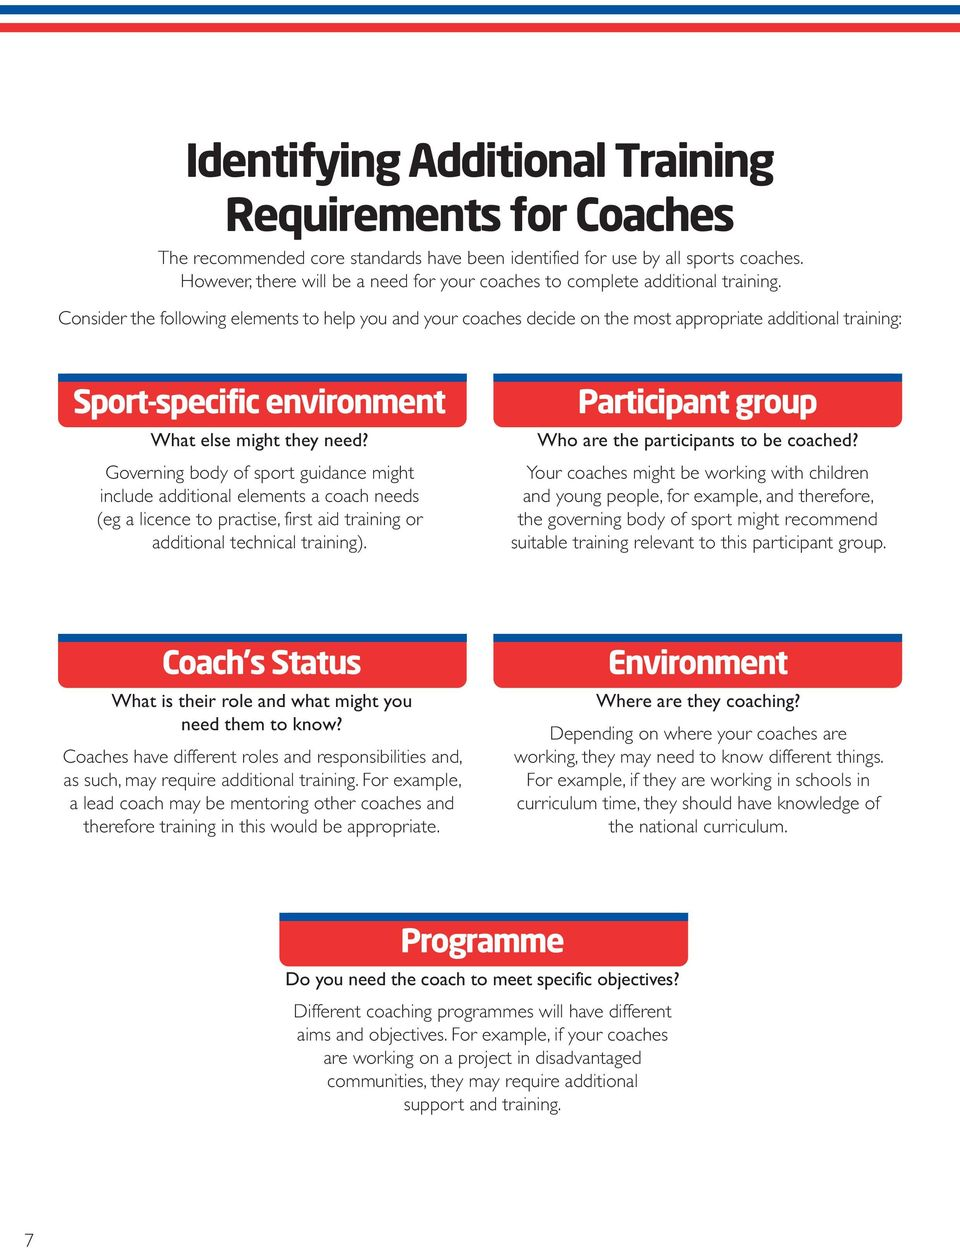 Consider the following elements to help you and your coaches decide on the most appropriate additional training: Sport-specific environment What else might they need?